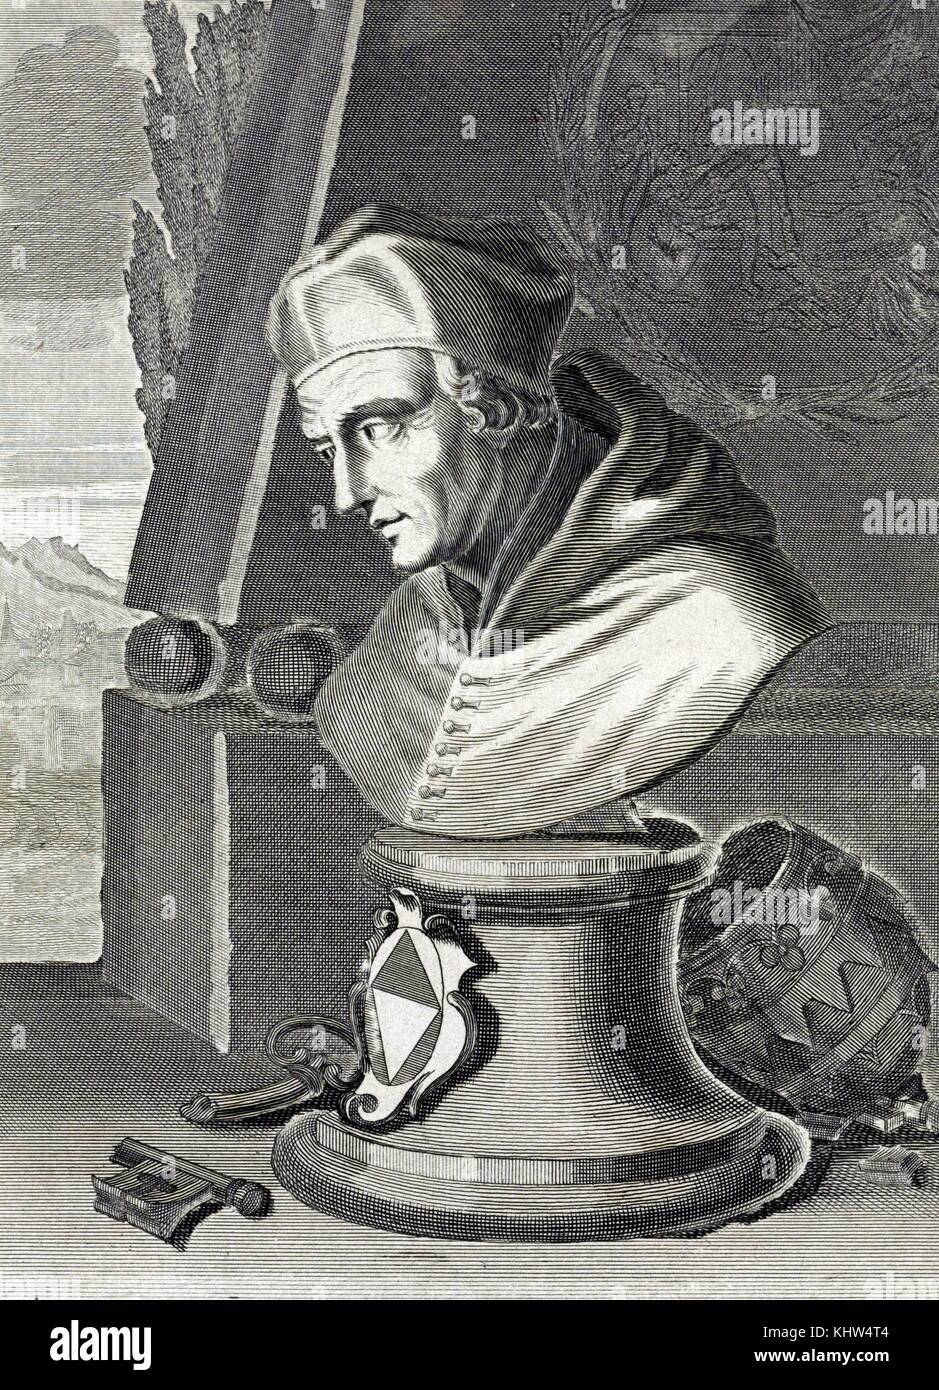 Engraving depicting a bust of Pope Gregorie XII (1326-1417) who was forced to resign to end the Western Schism. - Stock Image